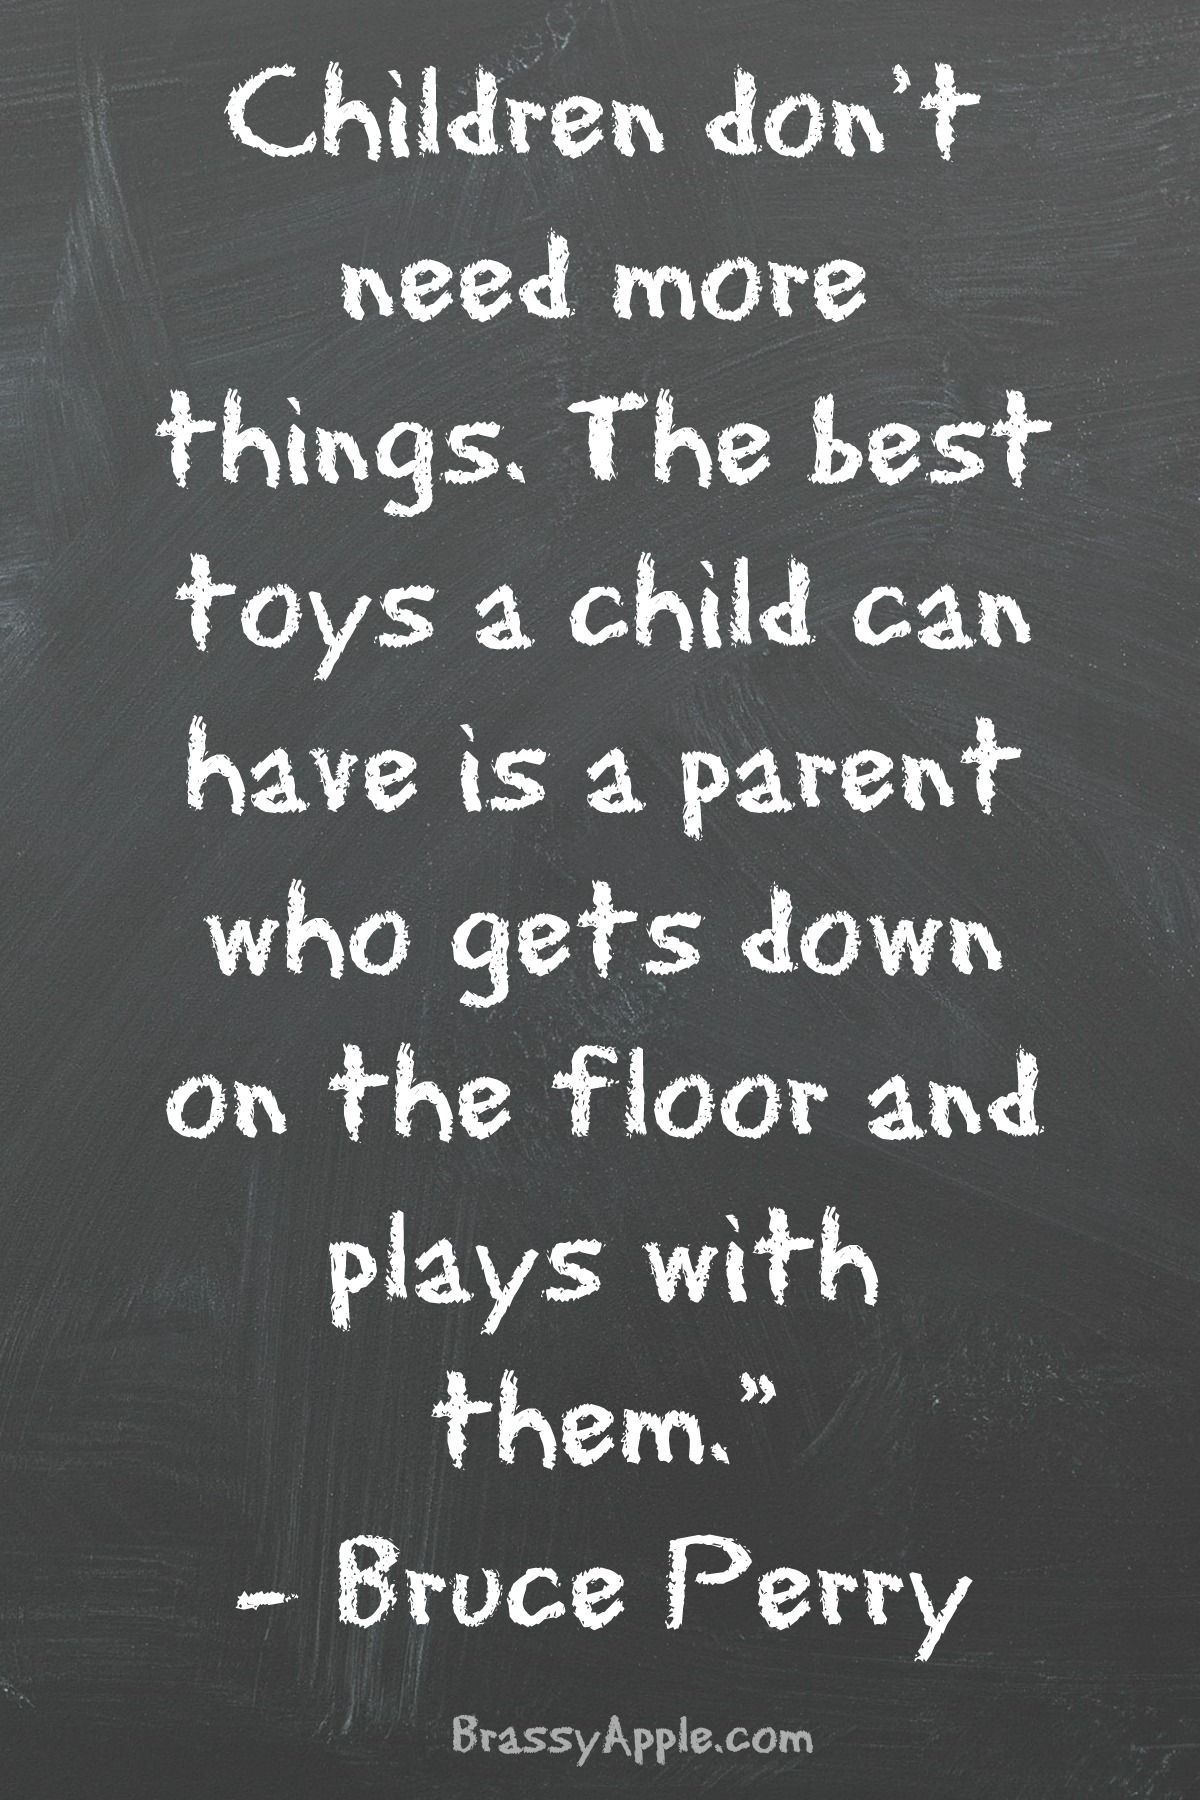 Children don't need more toys. They need parents who will ...